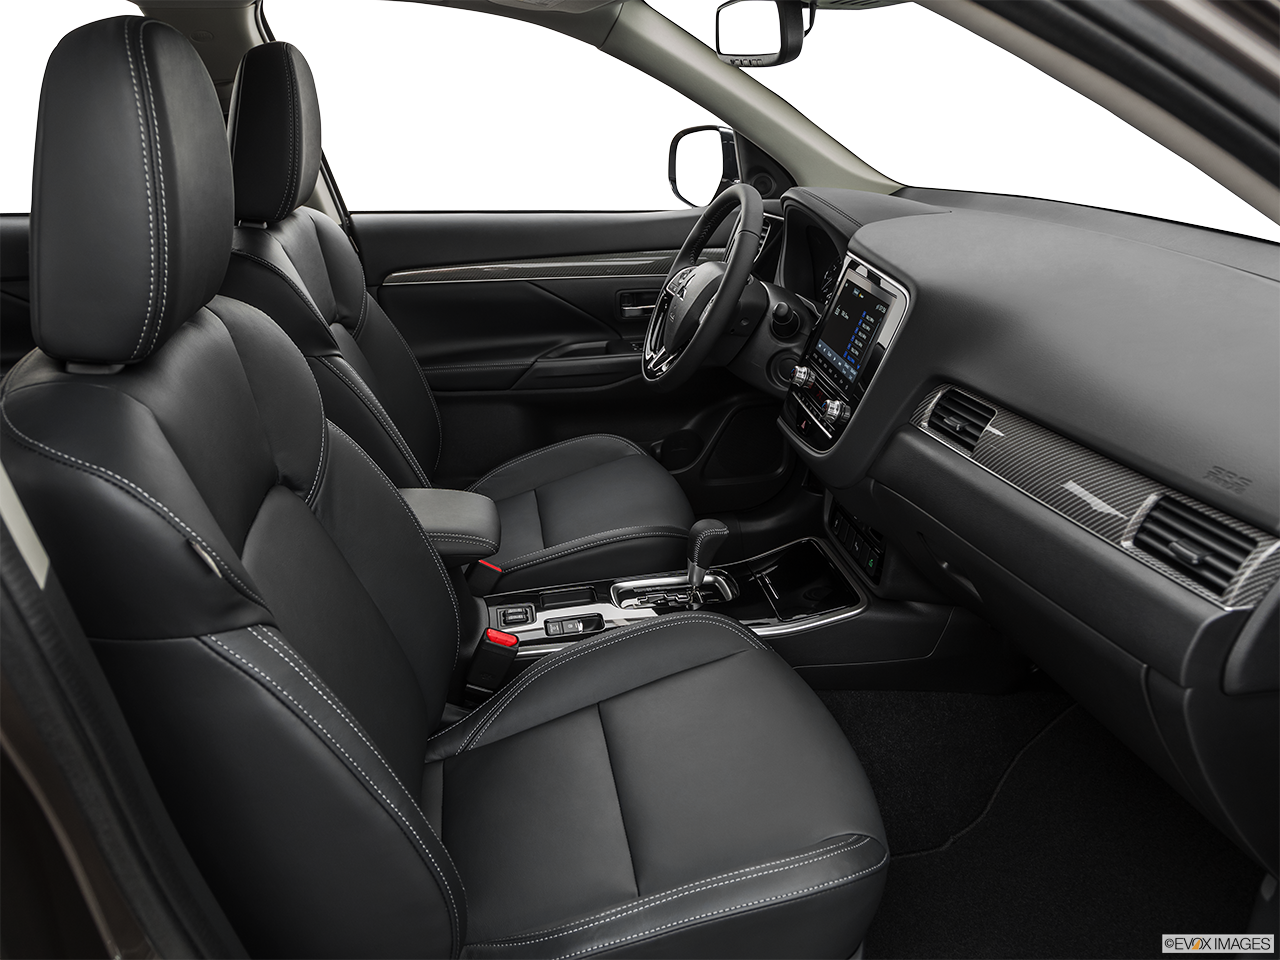 Interior view of the Mitsubishi Outlander PHEV